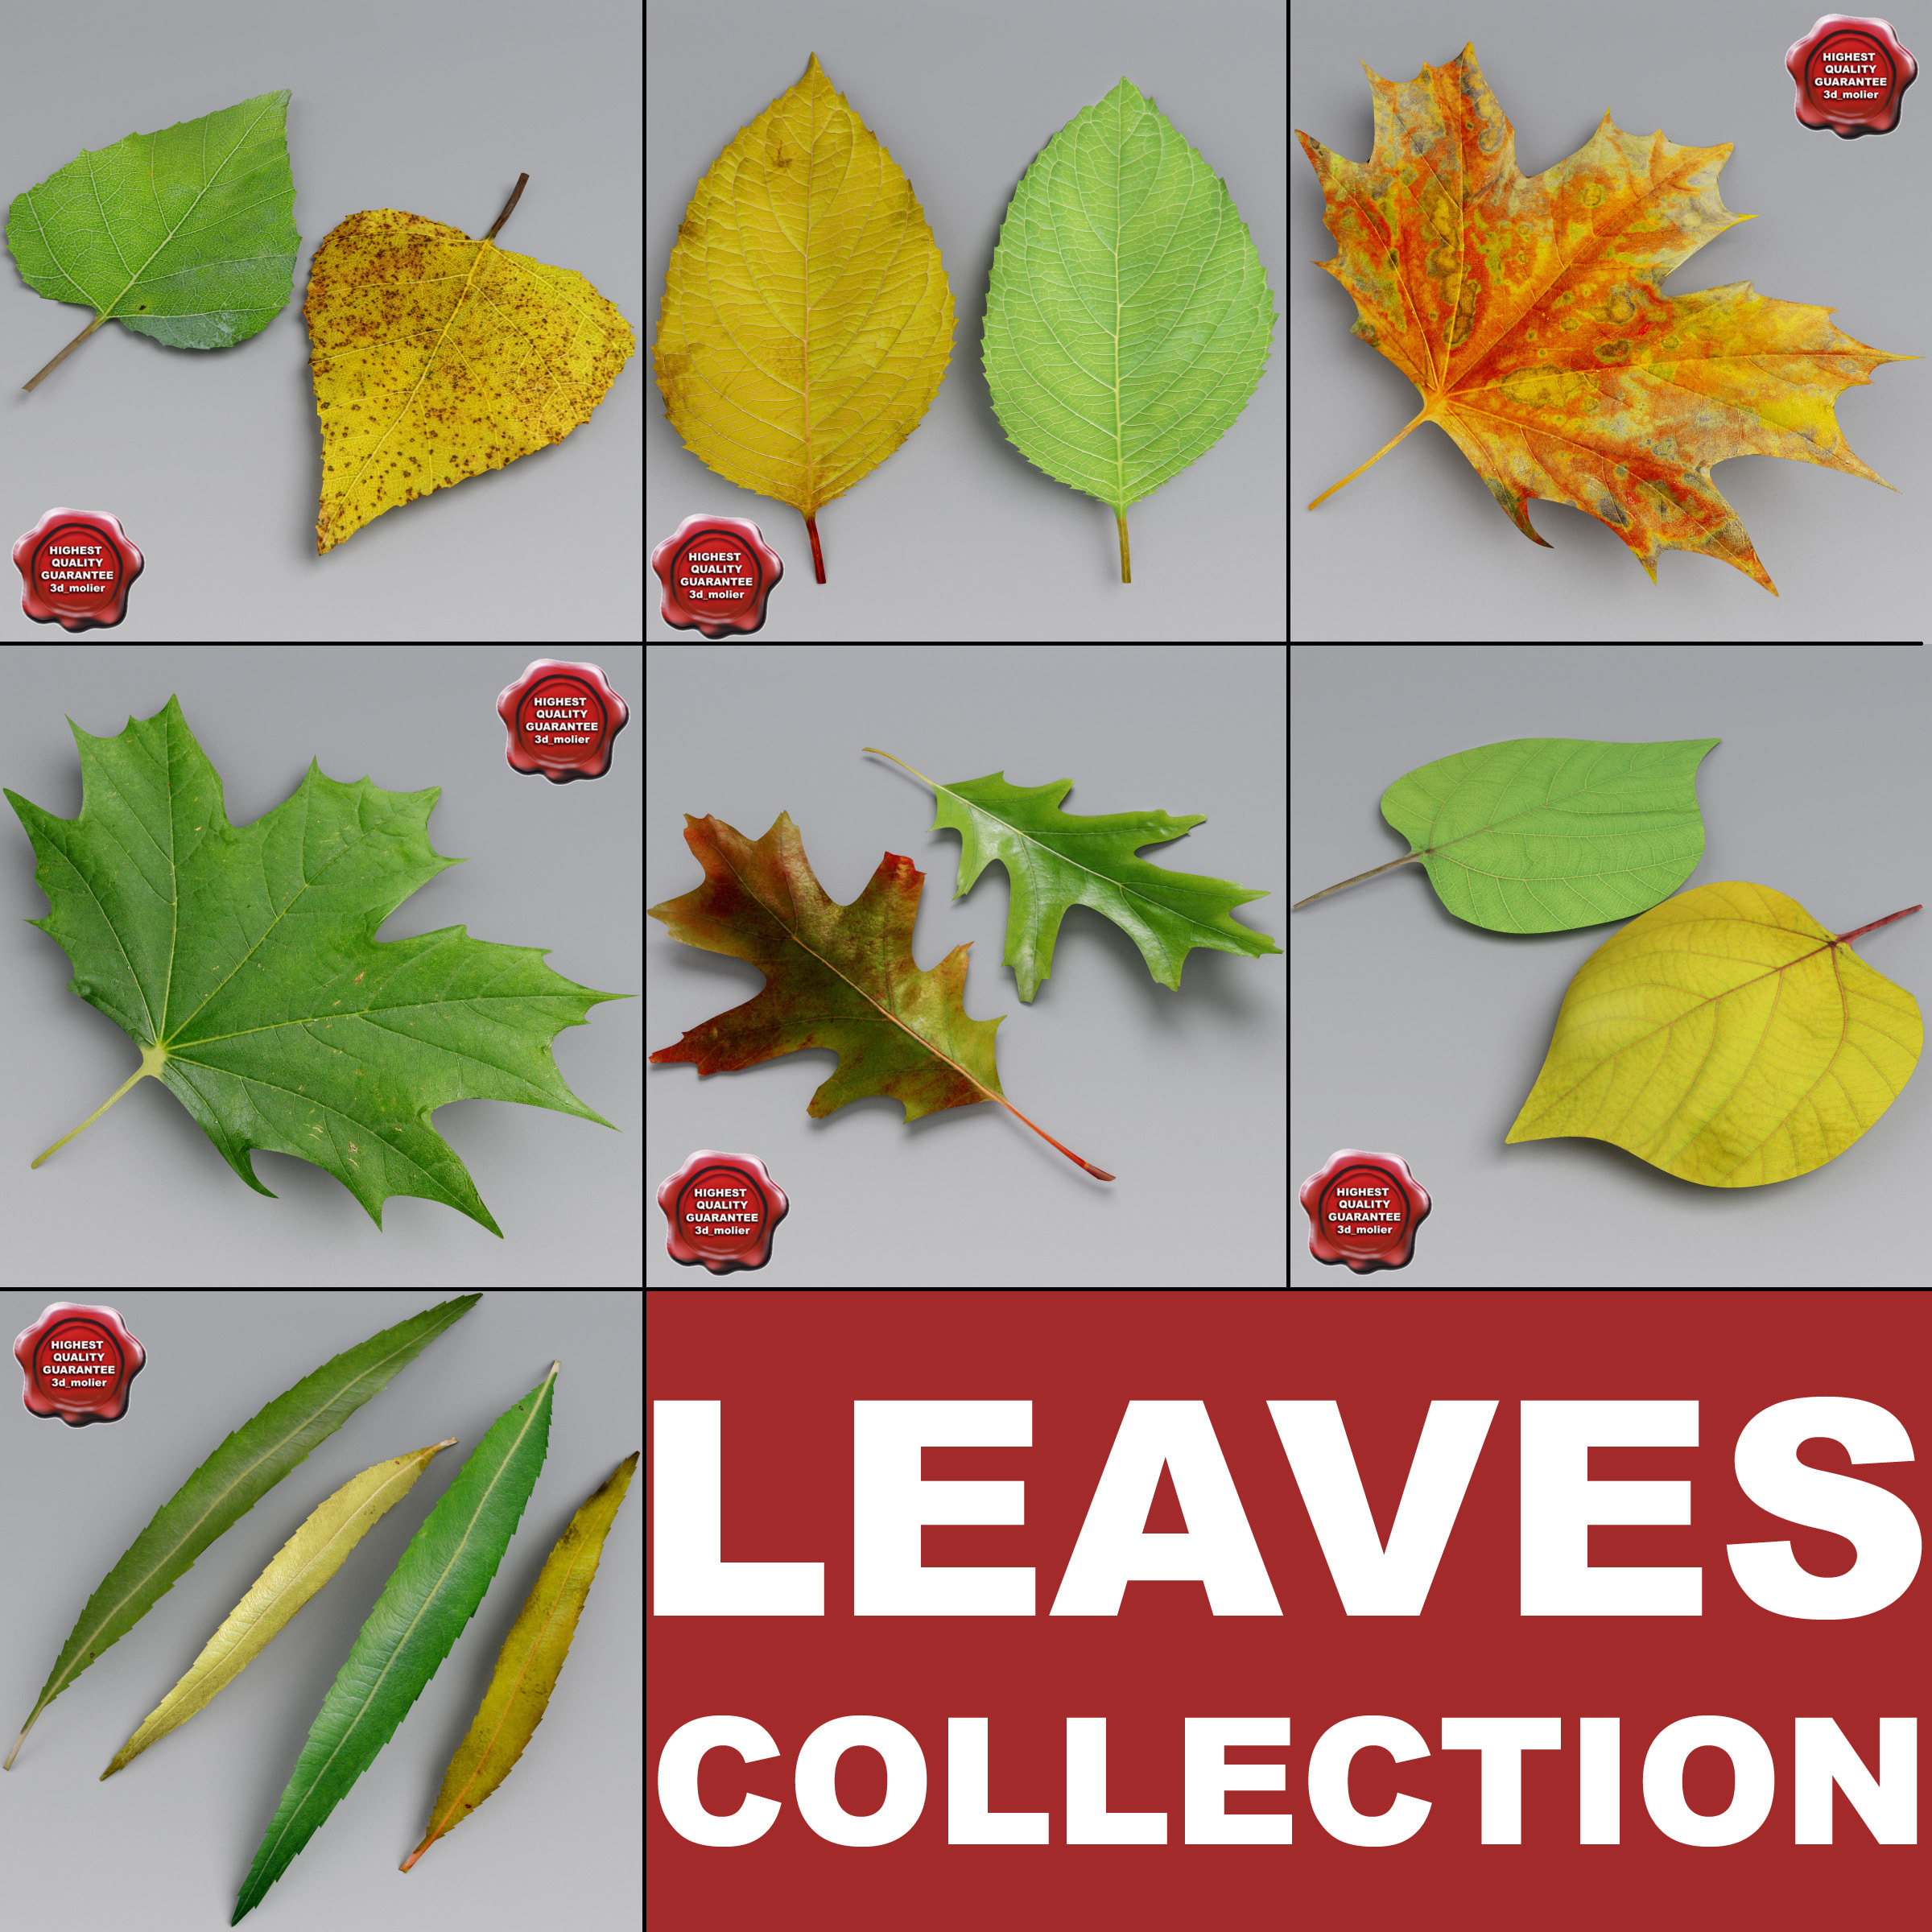 Leaves_Collection_00.jpg